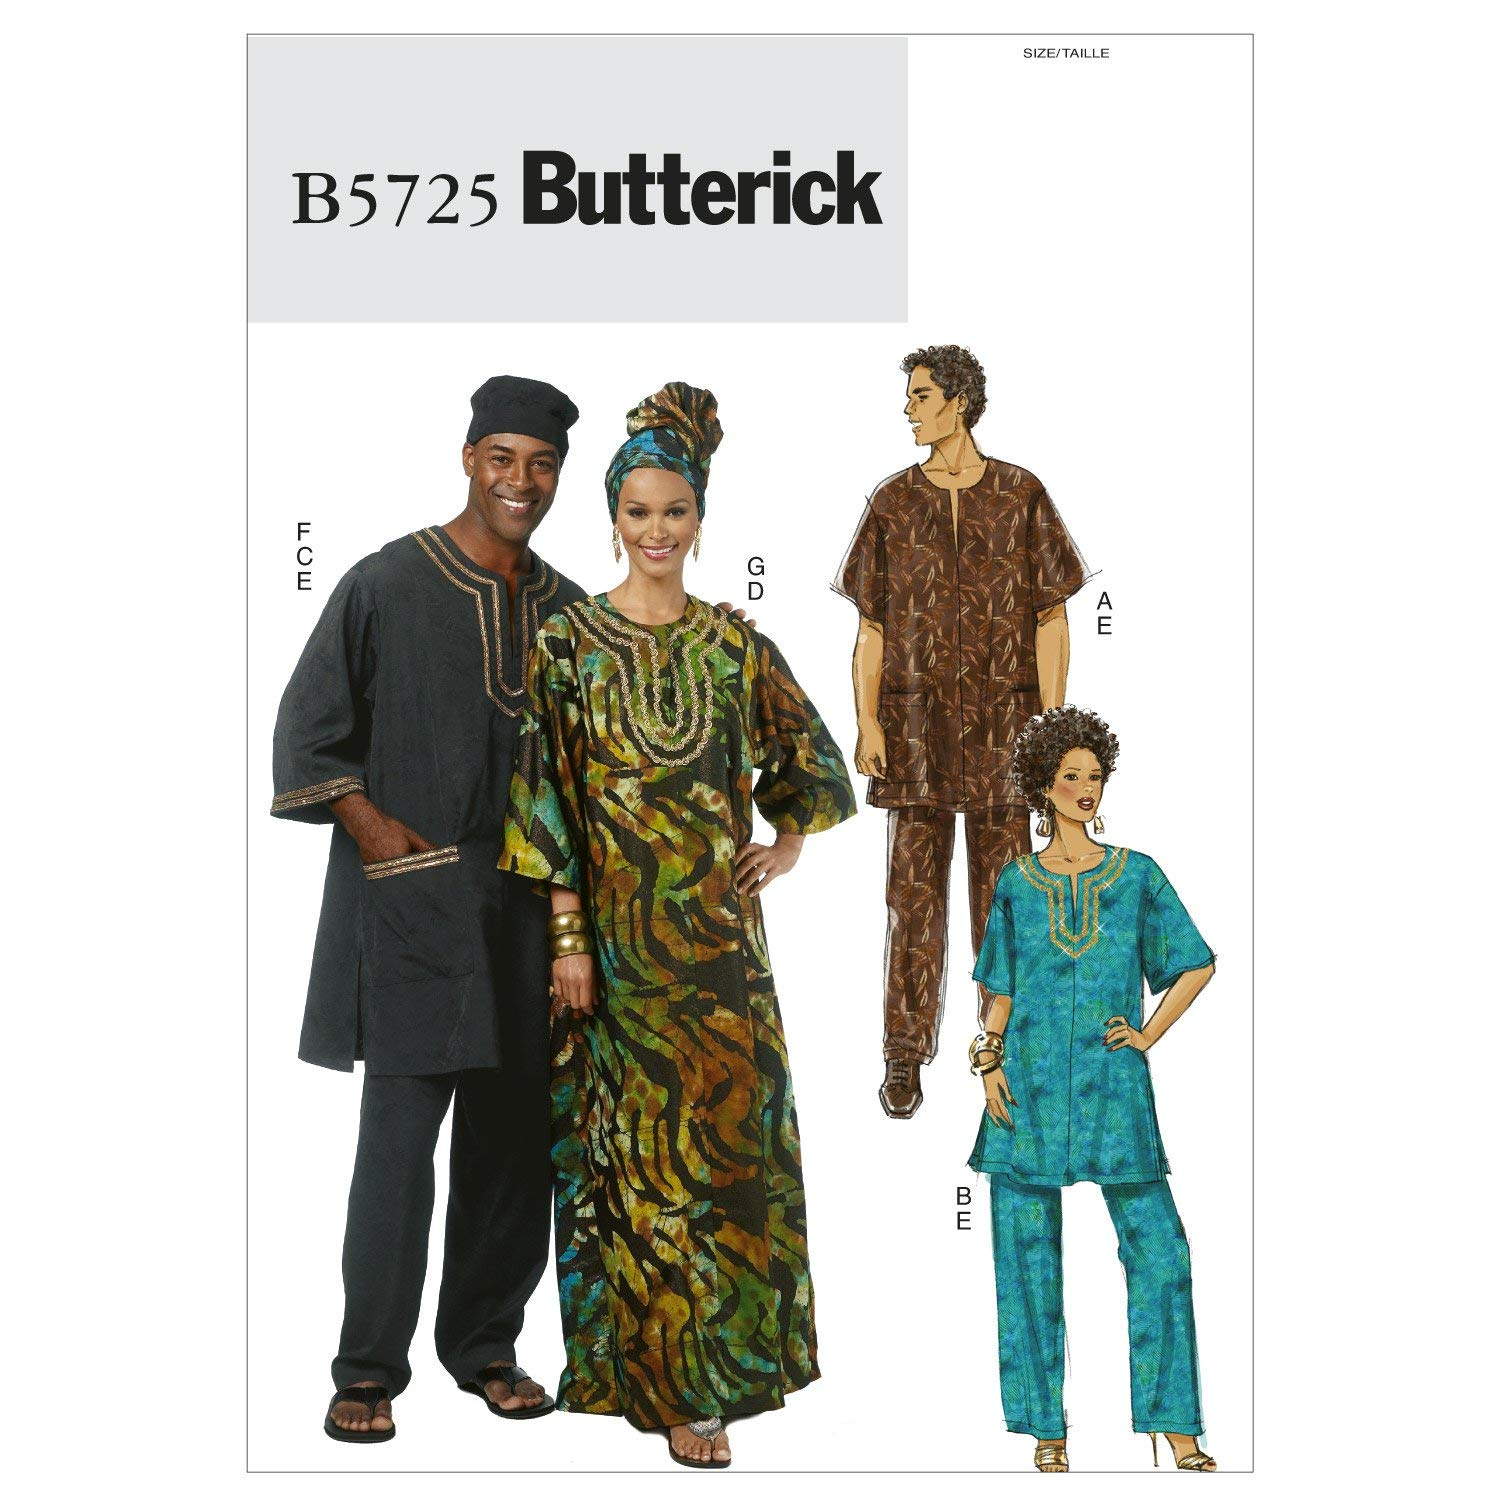 Pack of 1 White Pants Hat and Head Wrap XXXL Misses// Mens Tunic Butterick Patterns B5725 Size XN Extra-Large Caftan XXL